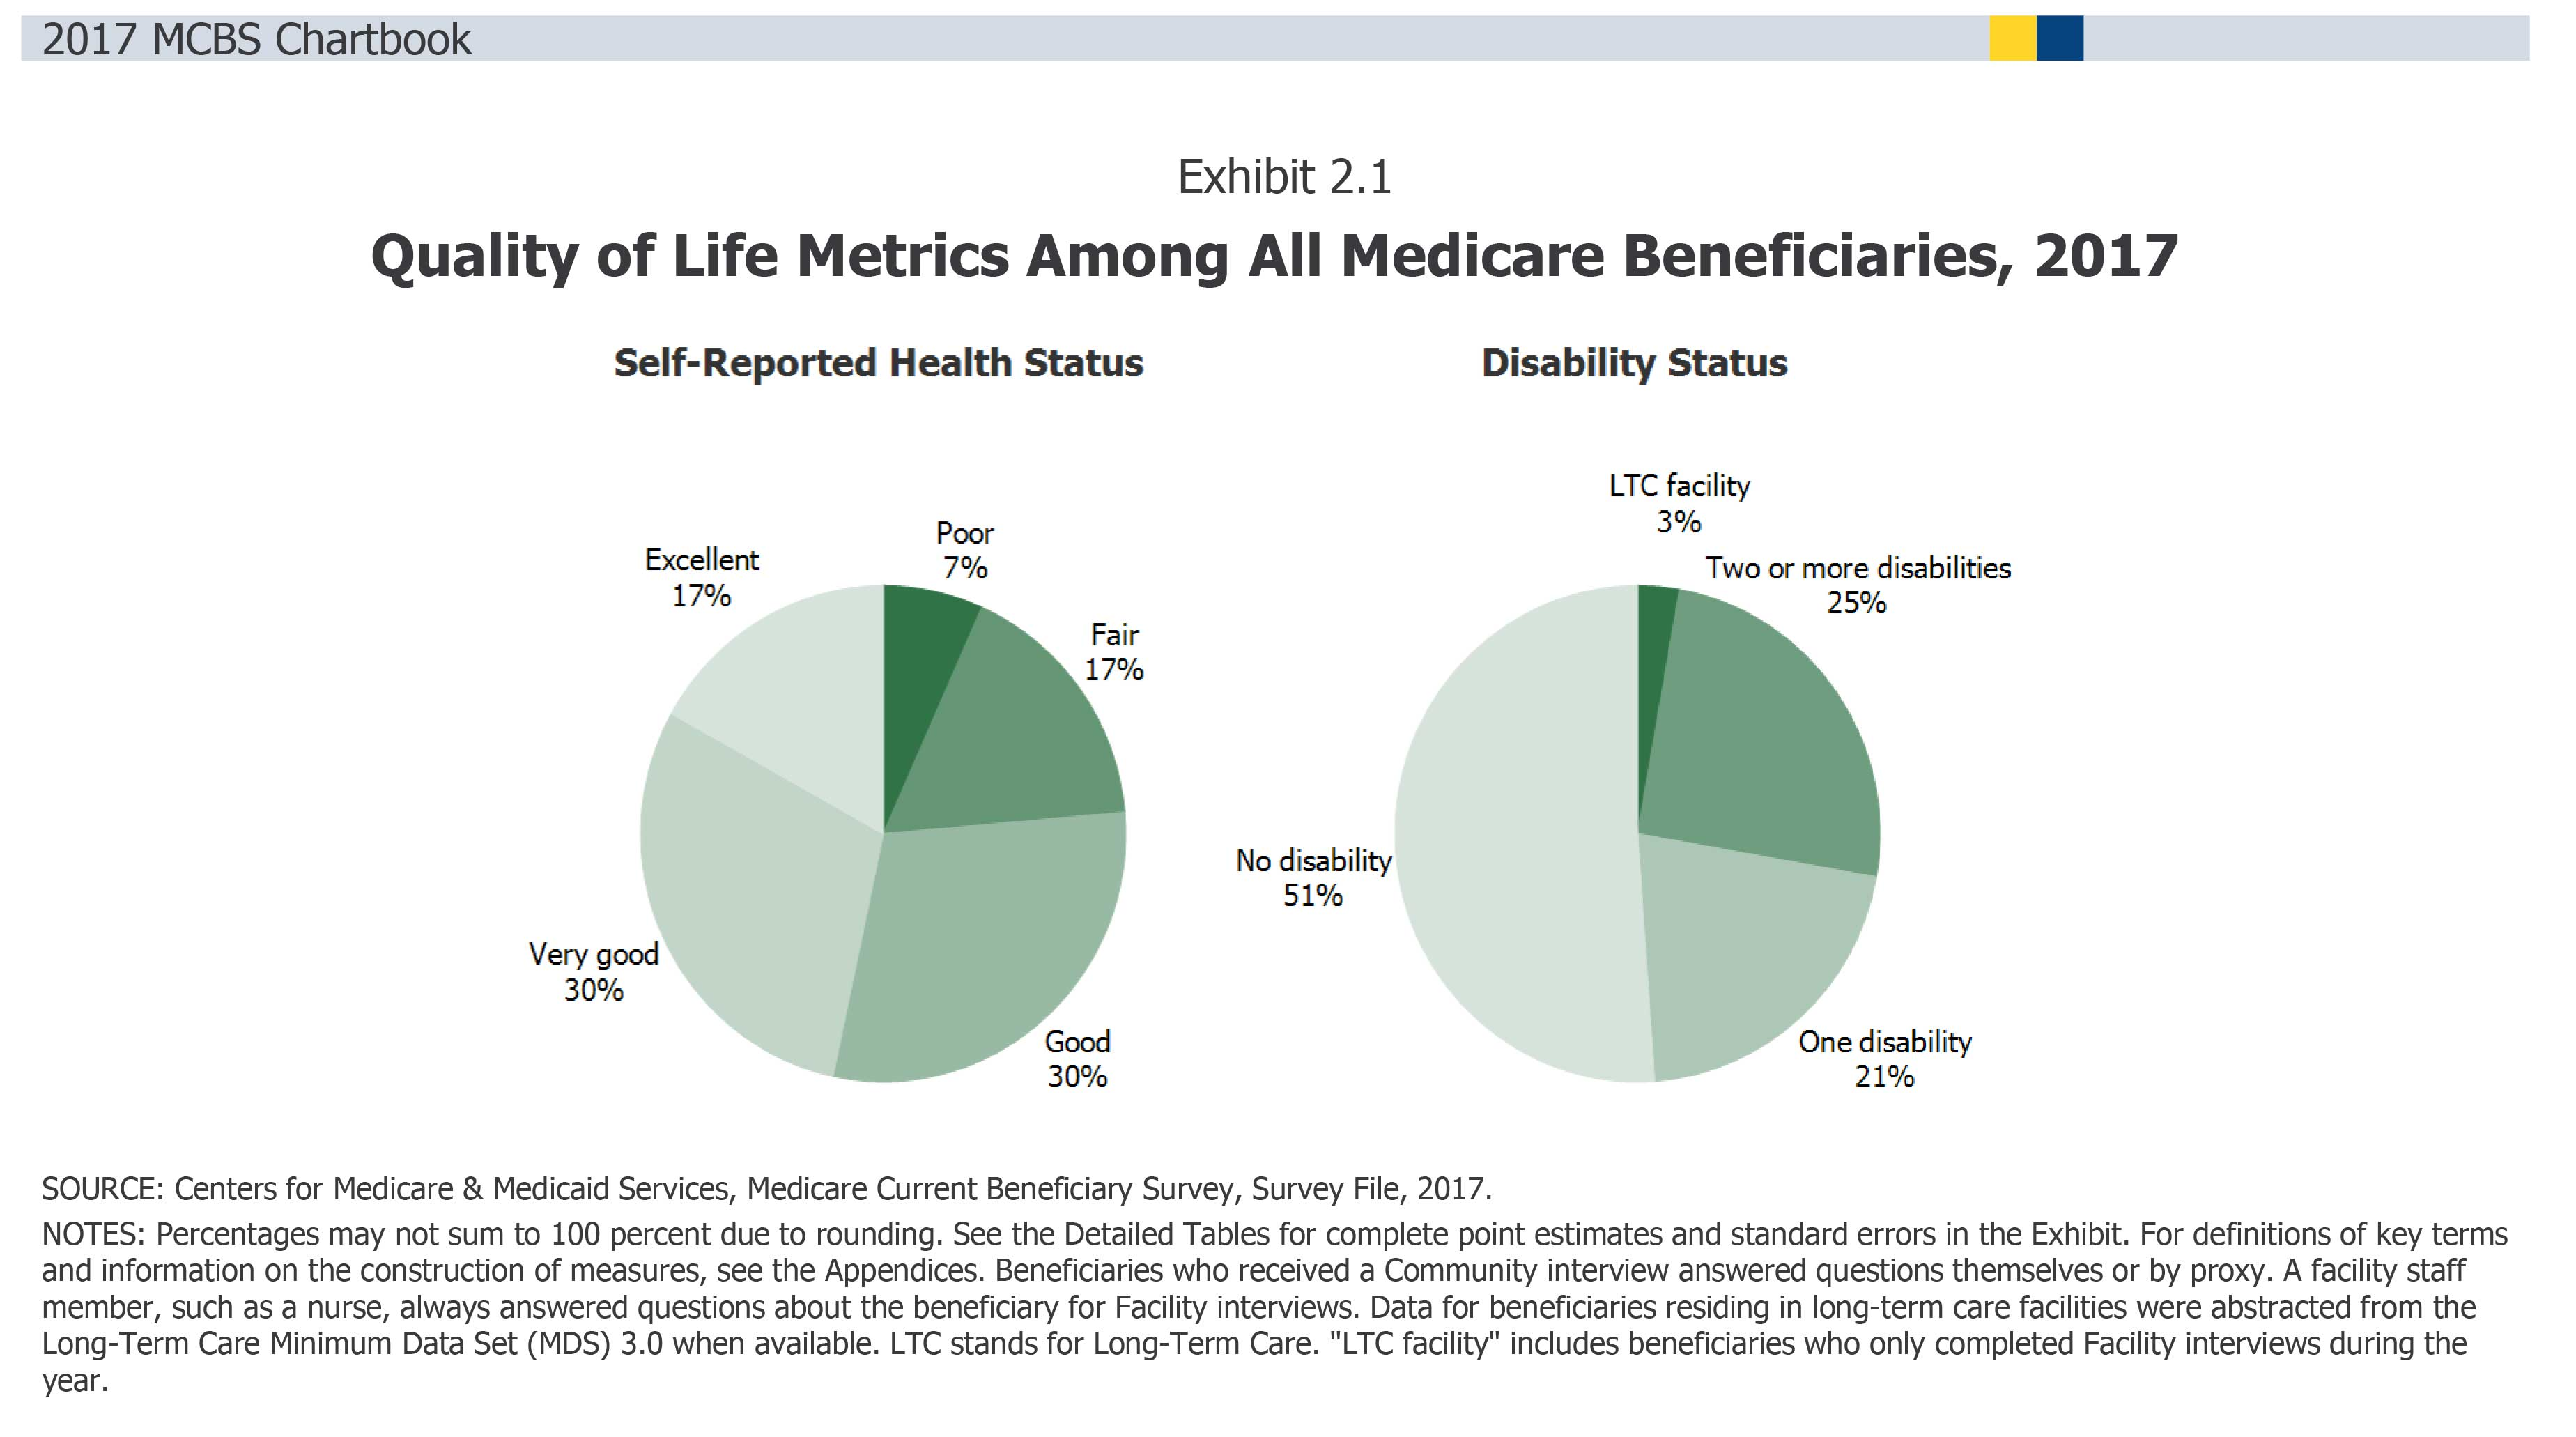 Quality of Life Metrics Among All Medicare Beneficiaries